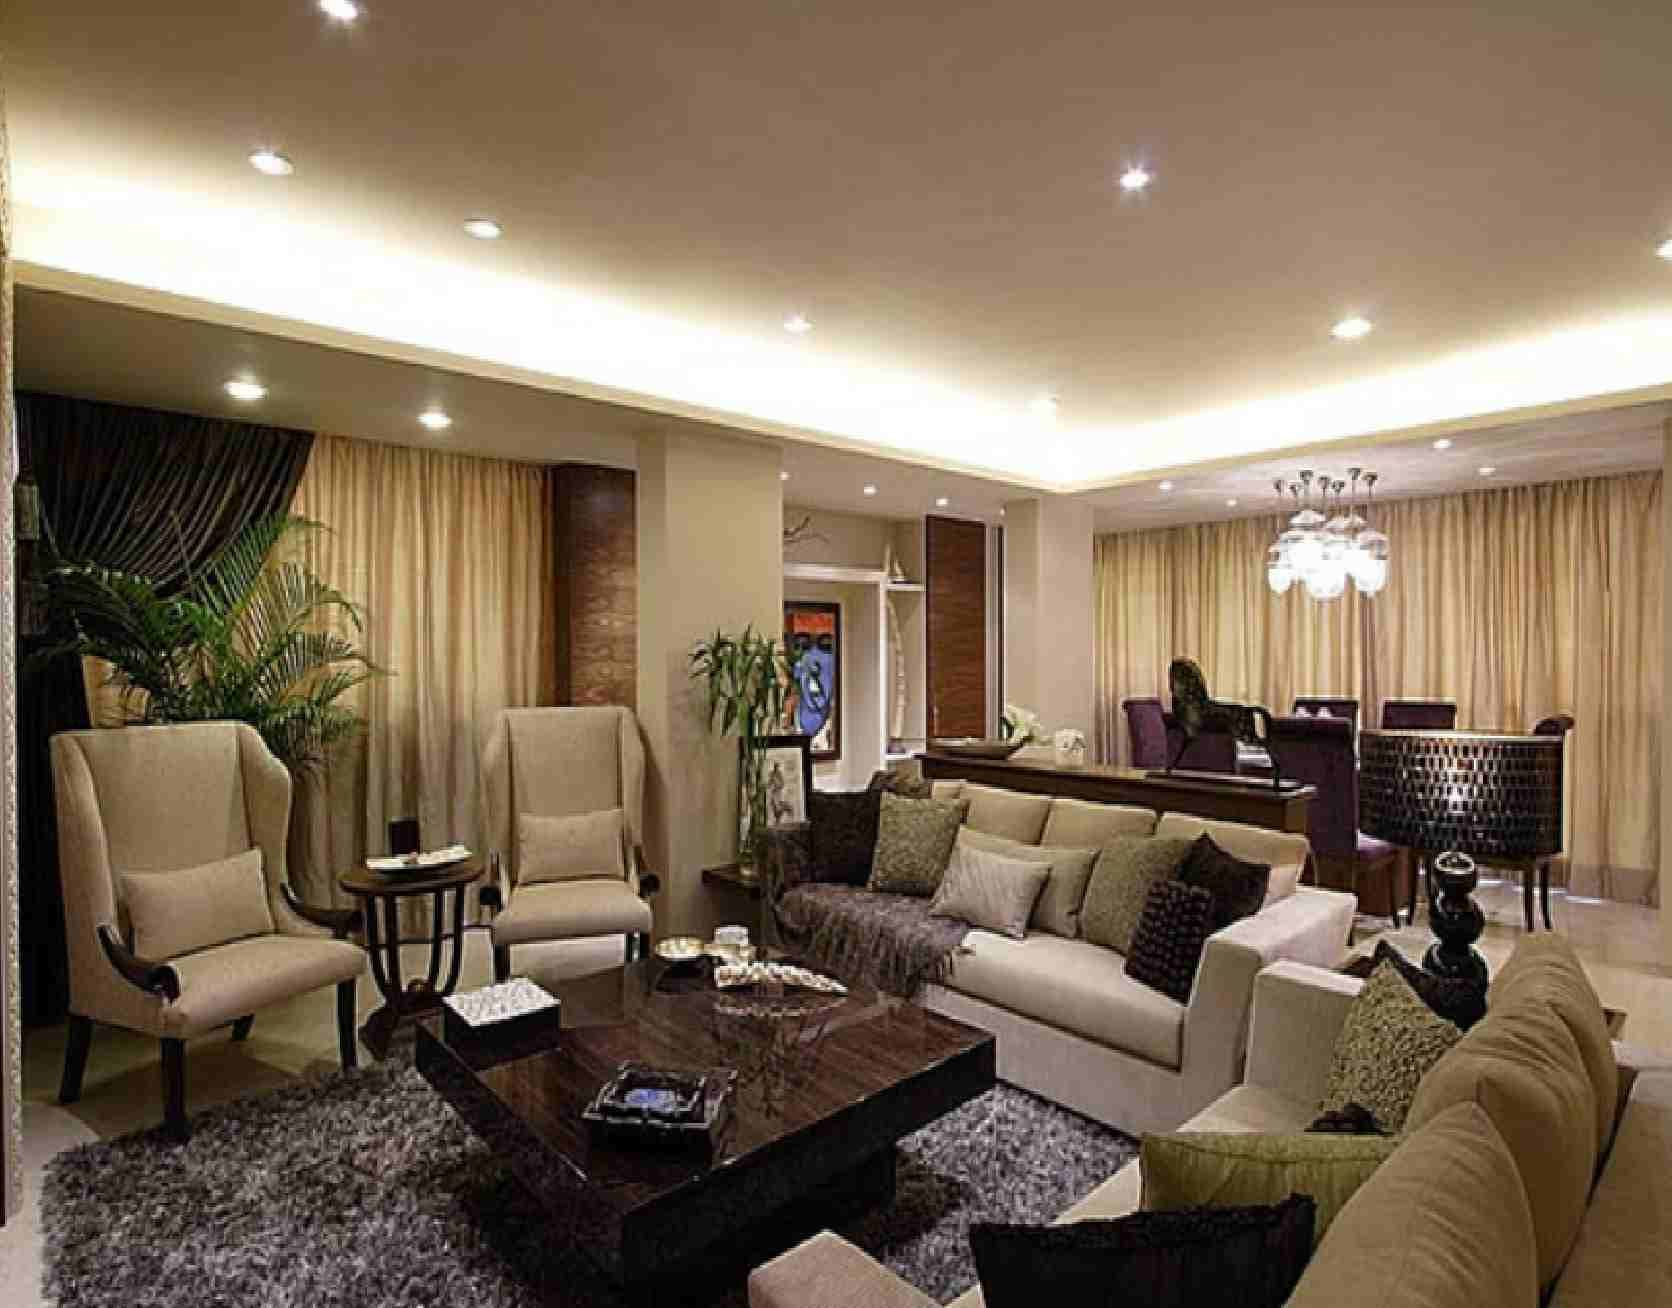 interior design of living room. interior design living room ideas